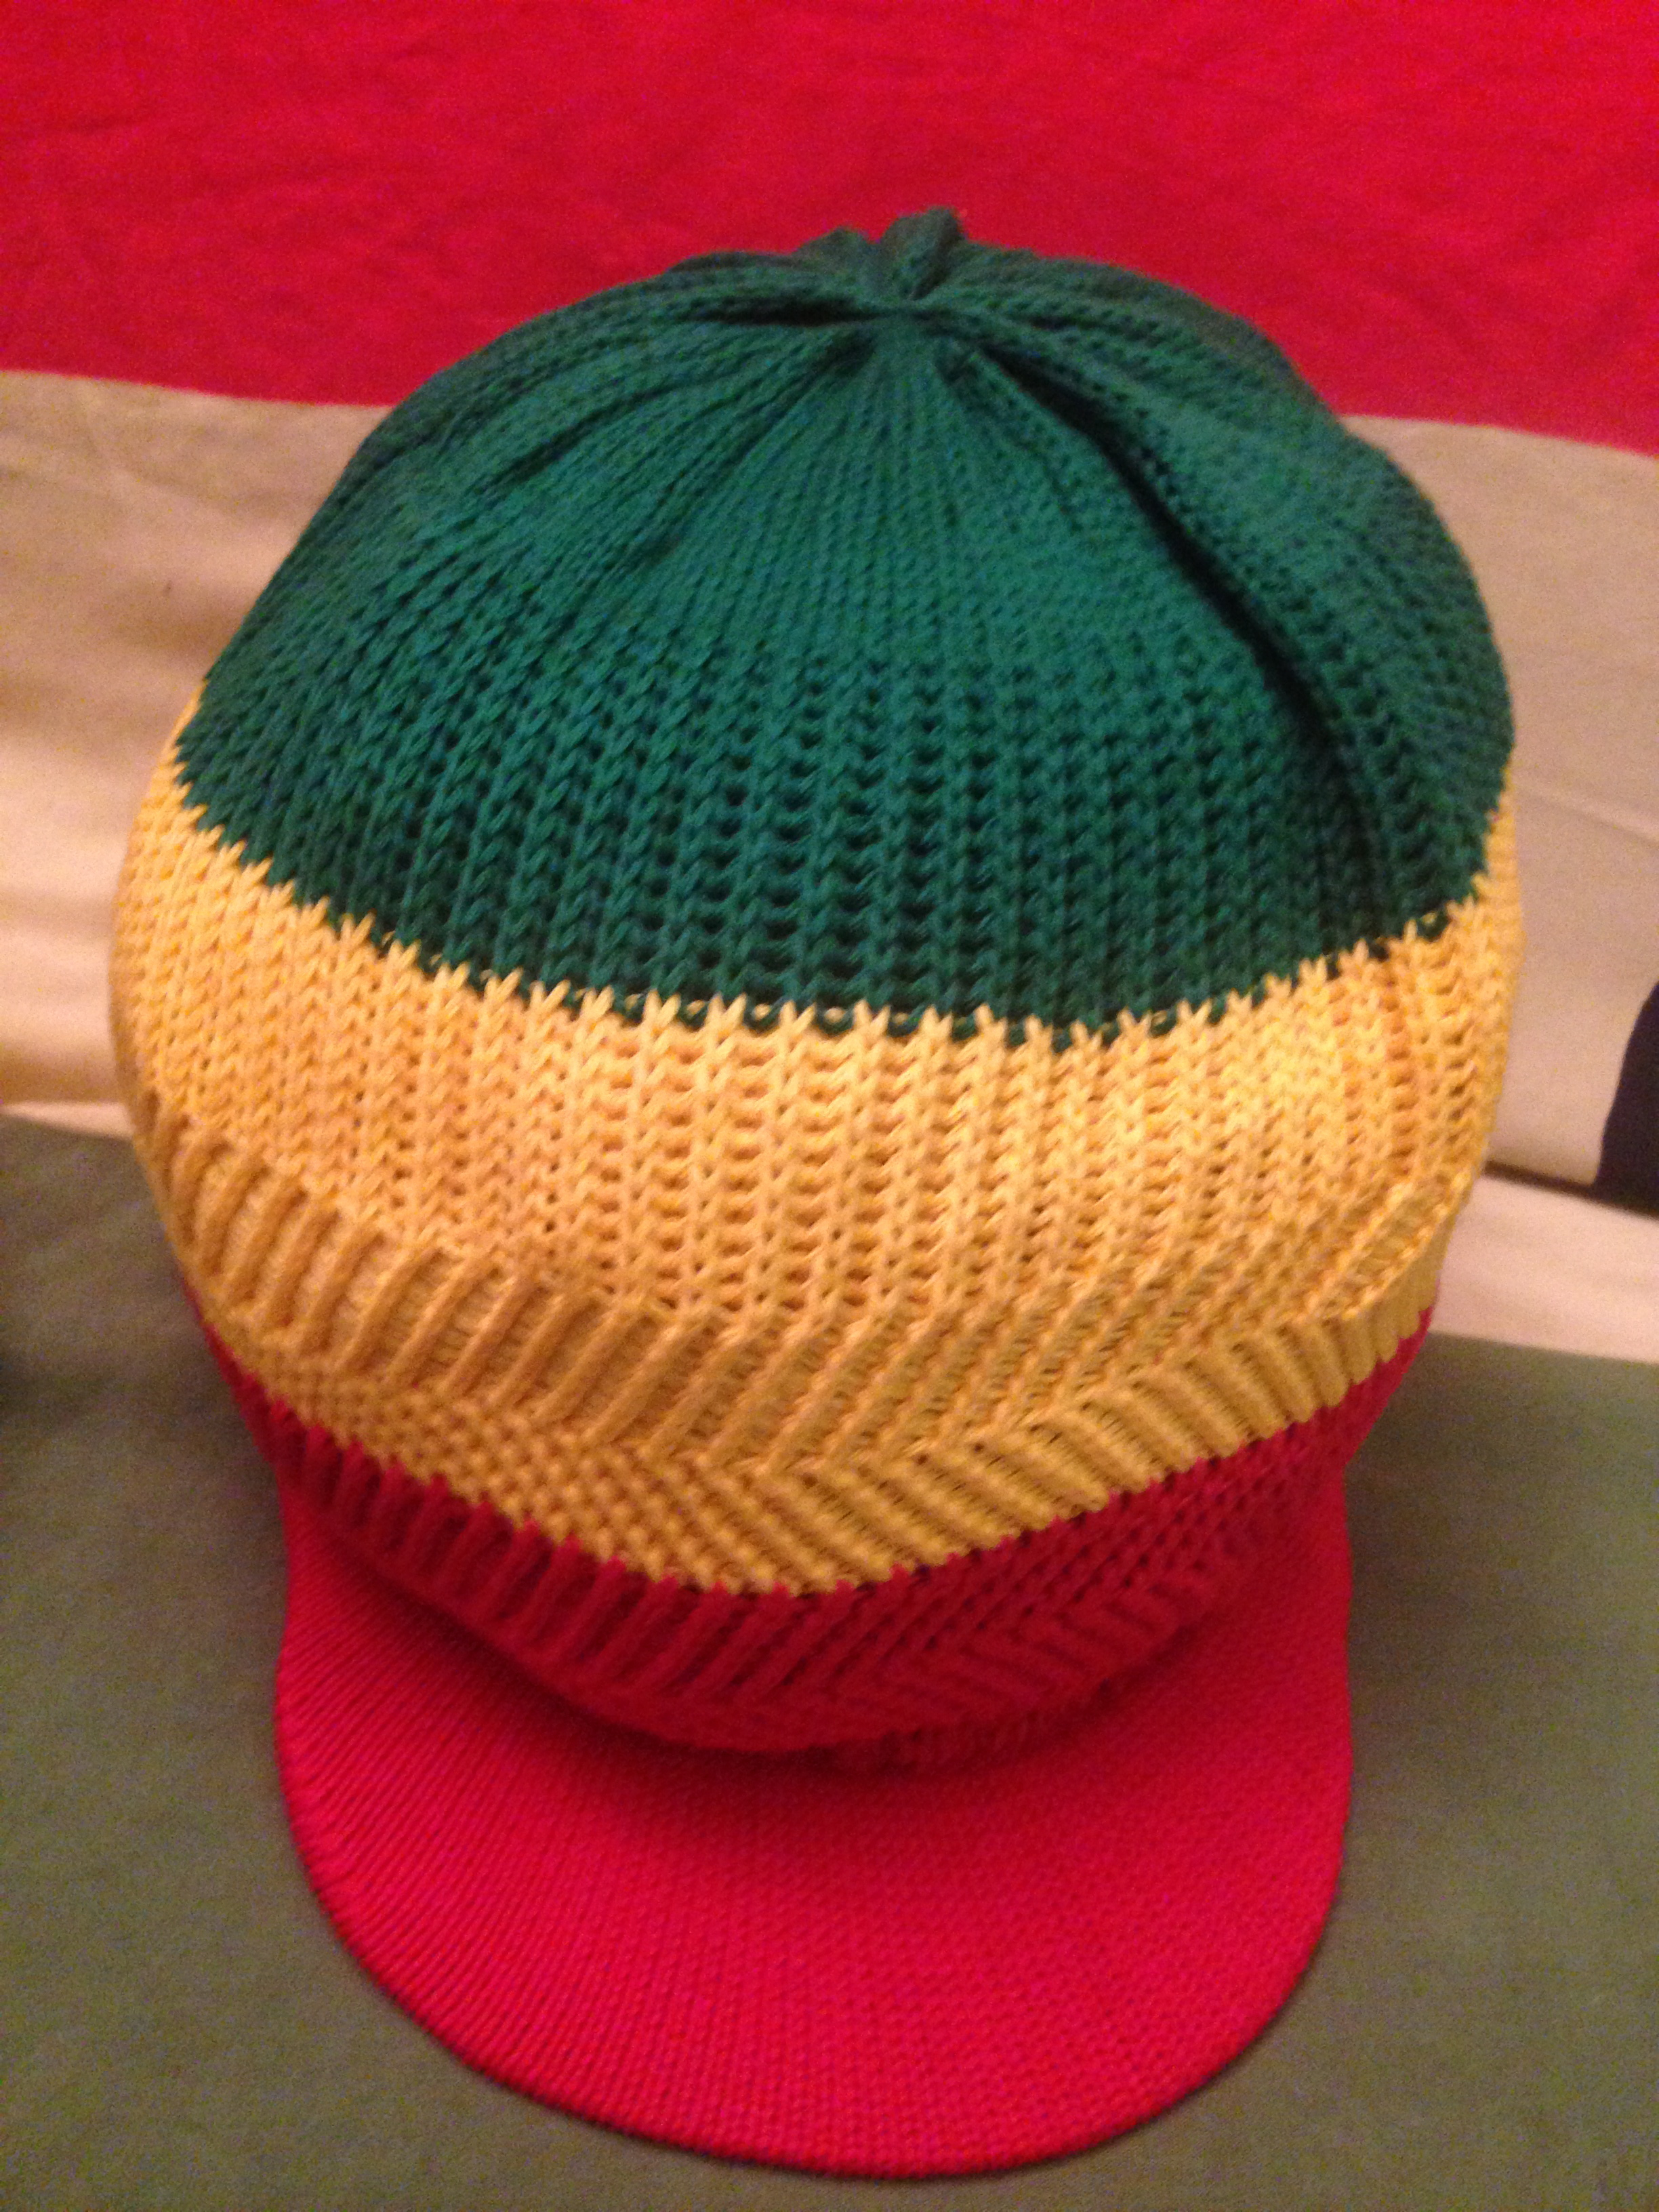 Knitting Pattern For Rasta Hat : Knit Rasta Hat ? Happy 2Be Nappy :-) ? Online Store Powered by Storenvy